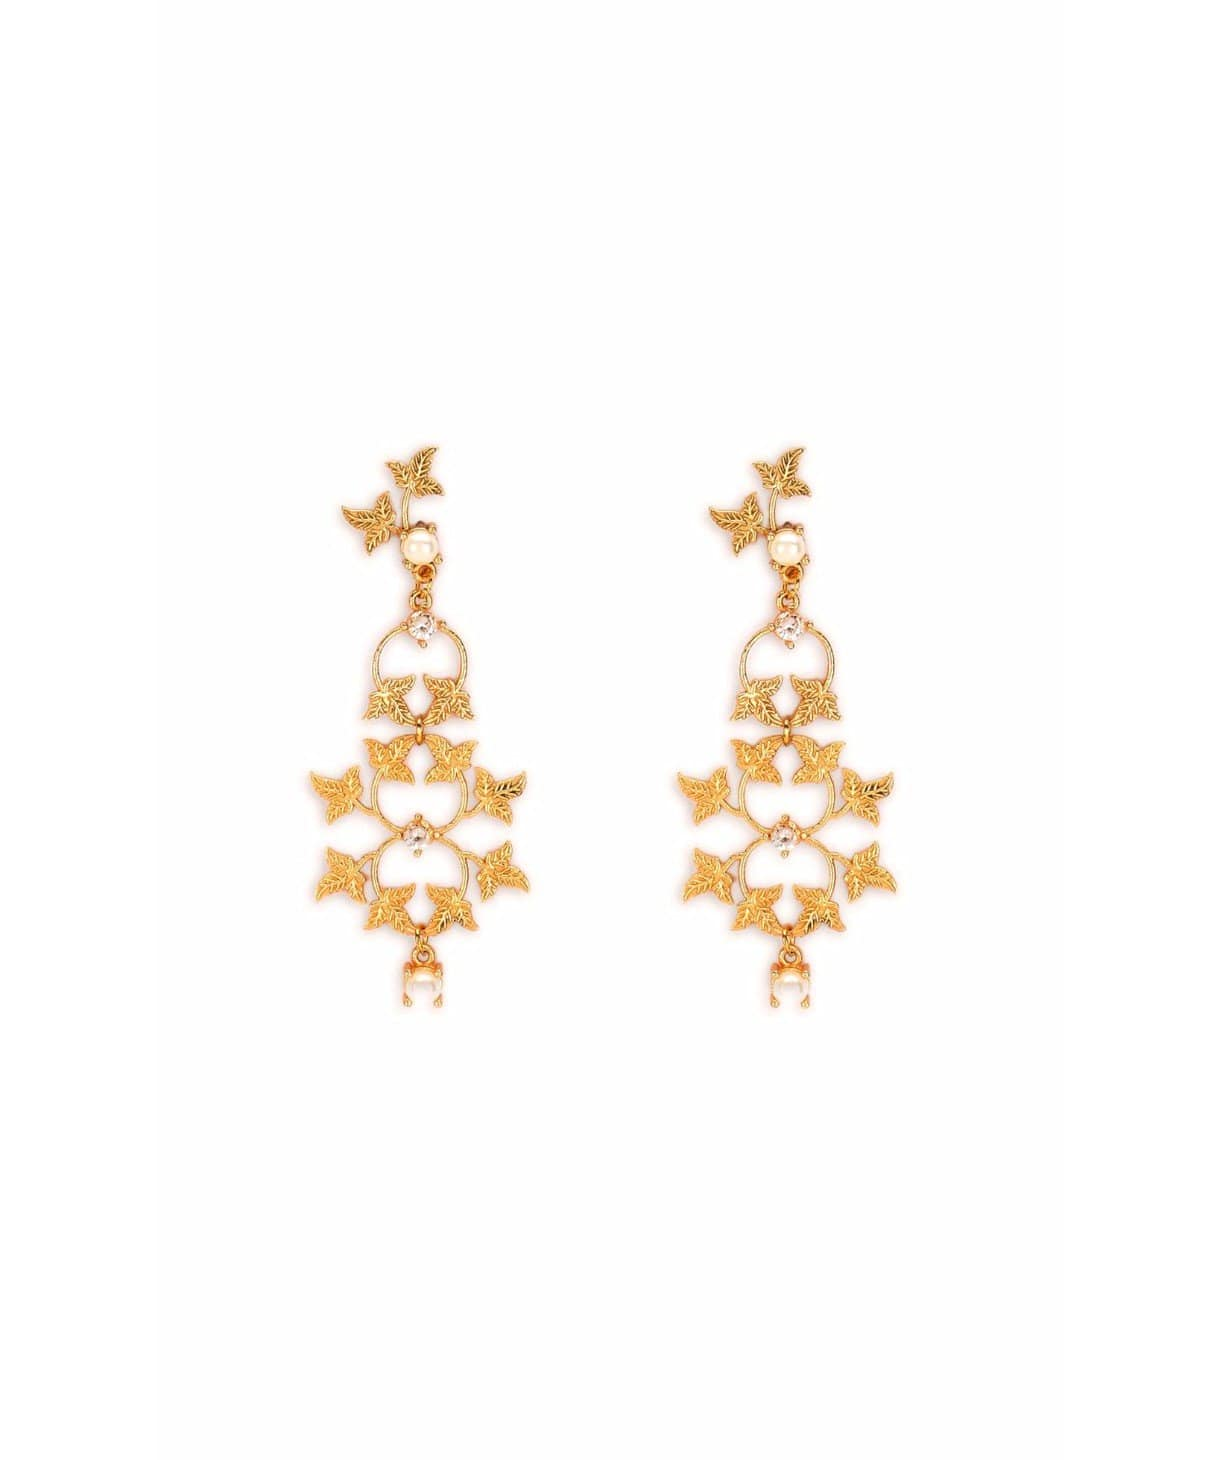 Dainty Gold Leaf Earrings - Uptownie